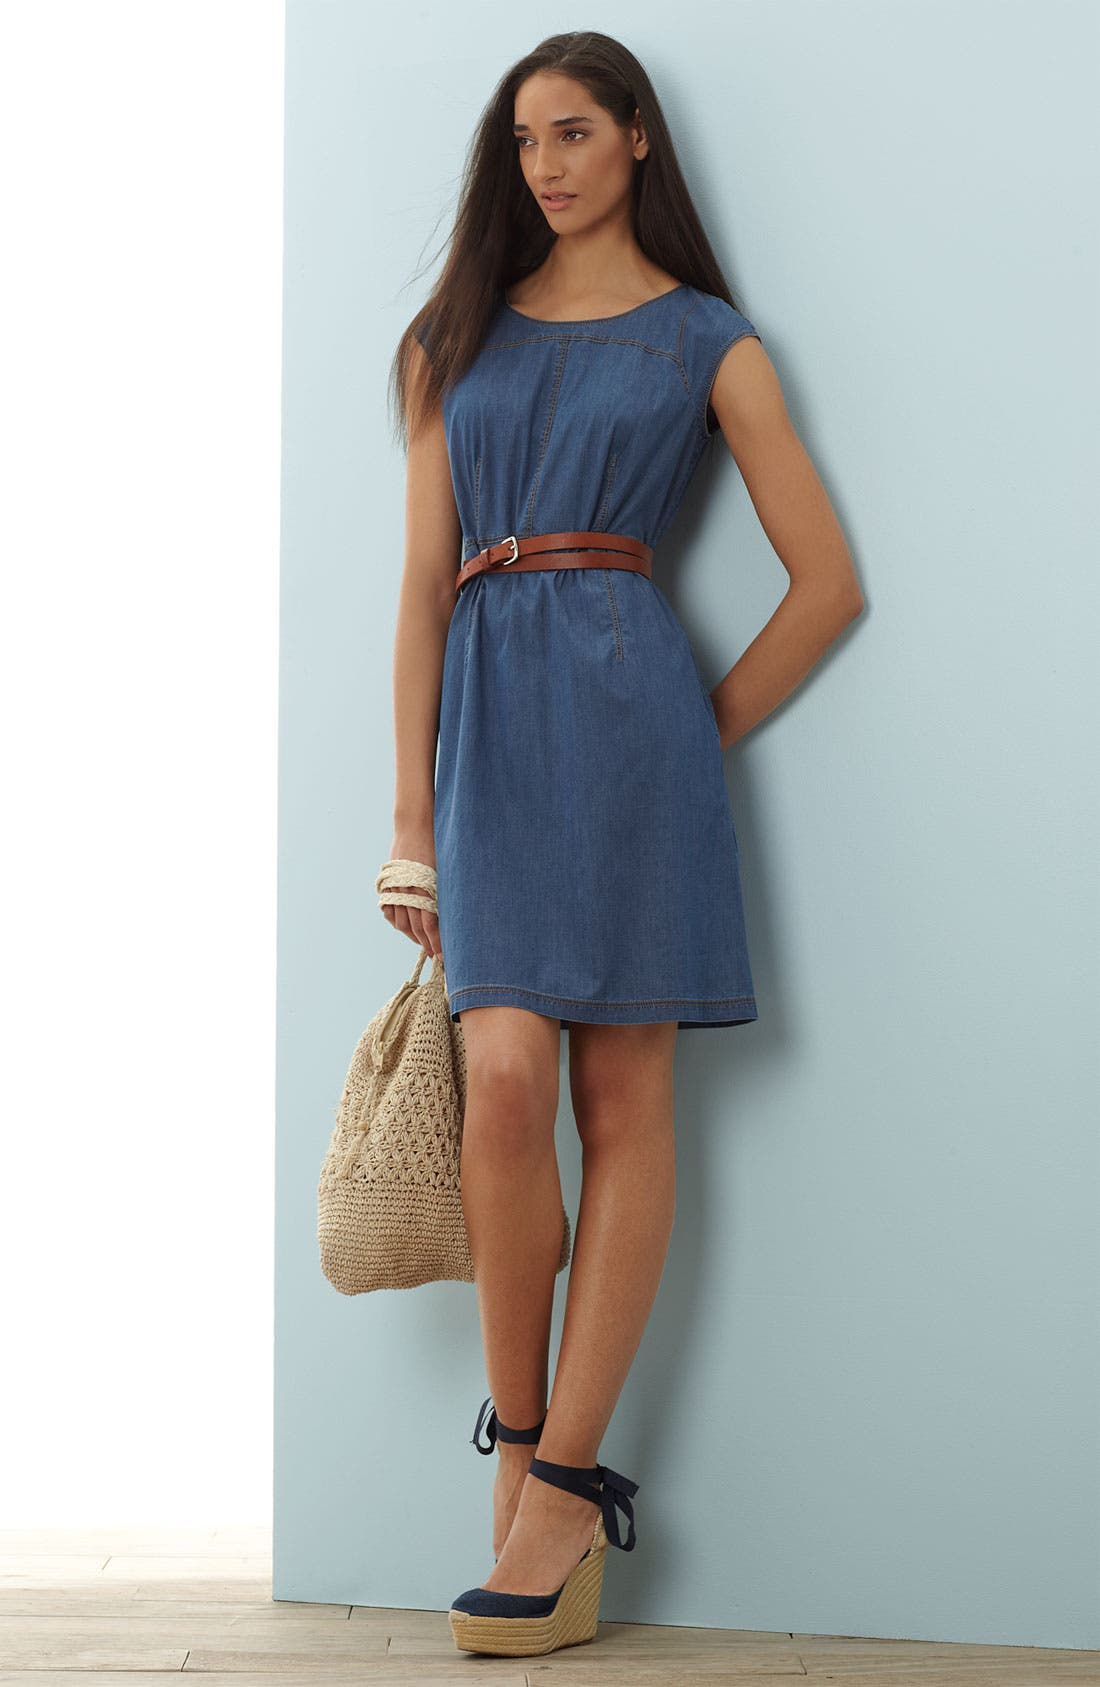 Alternate Image 1 Selected - Lafayette 148 New York Denim Dress & Belt